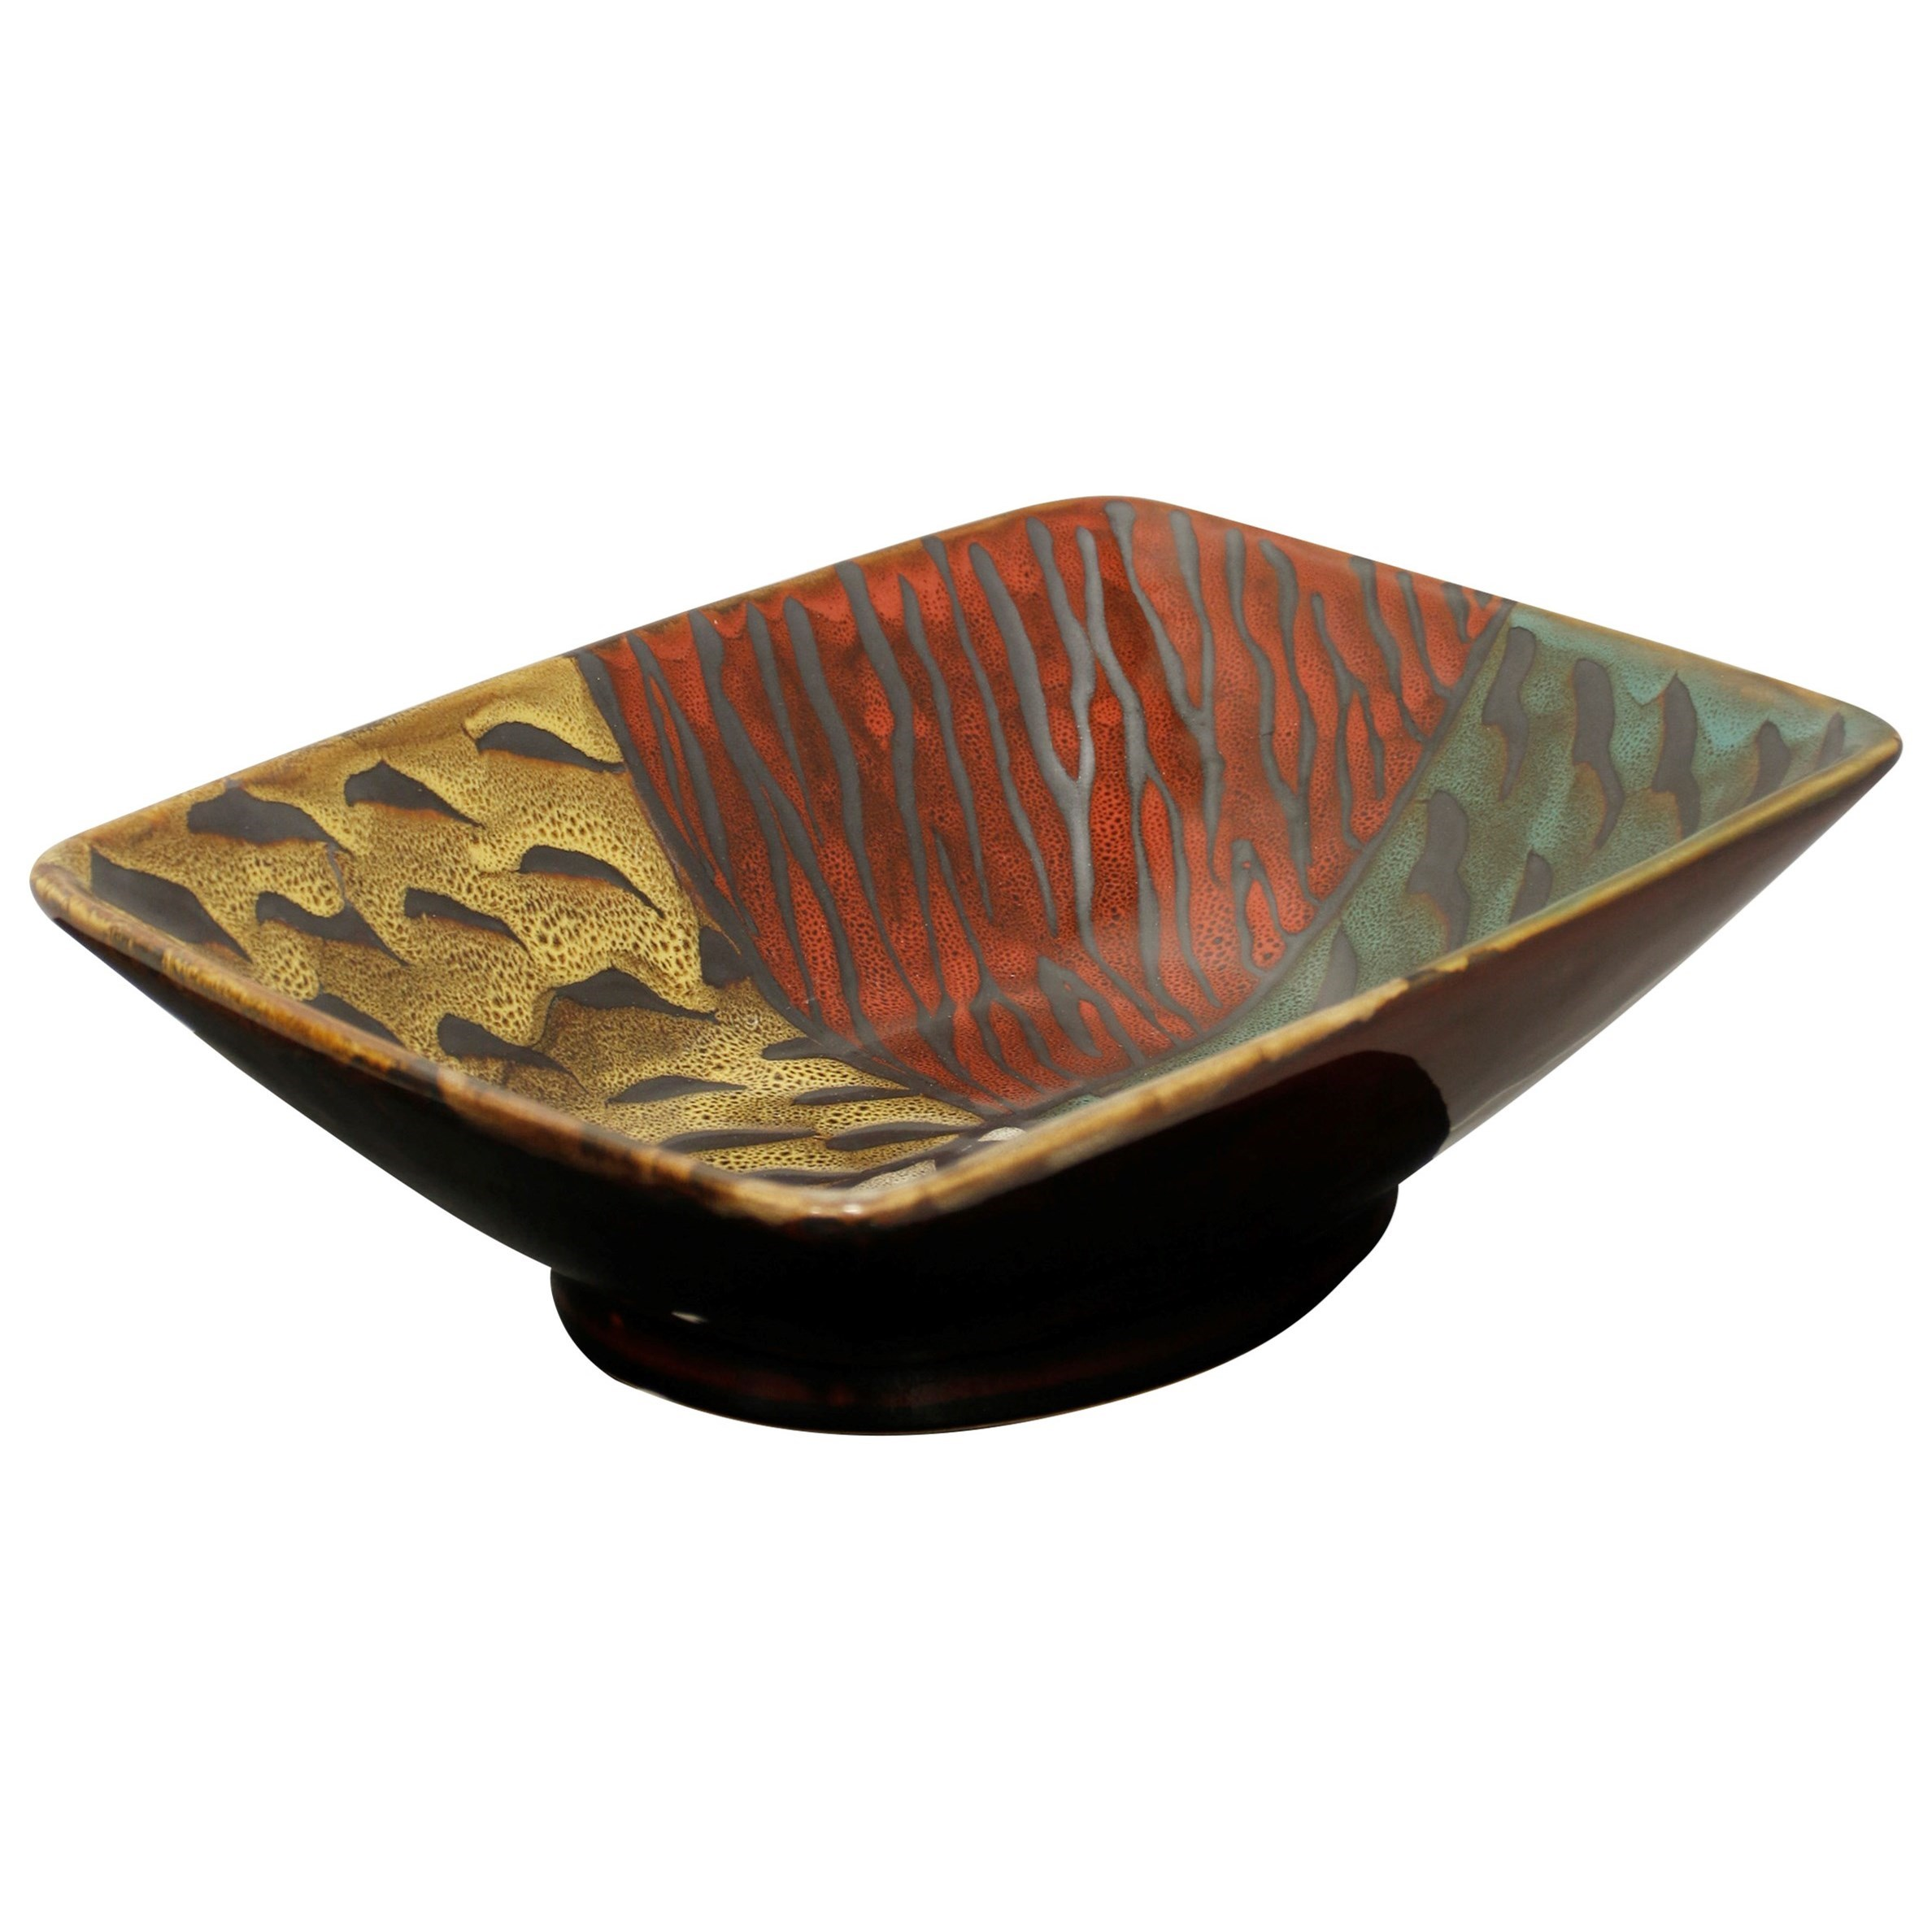 Accessories Rectangular Ceramic Bowl by StyleCraft at Alison Craig Home Furnishings